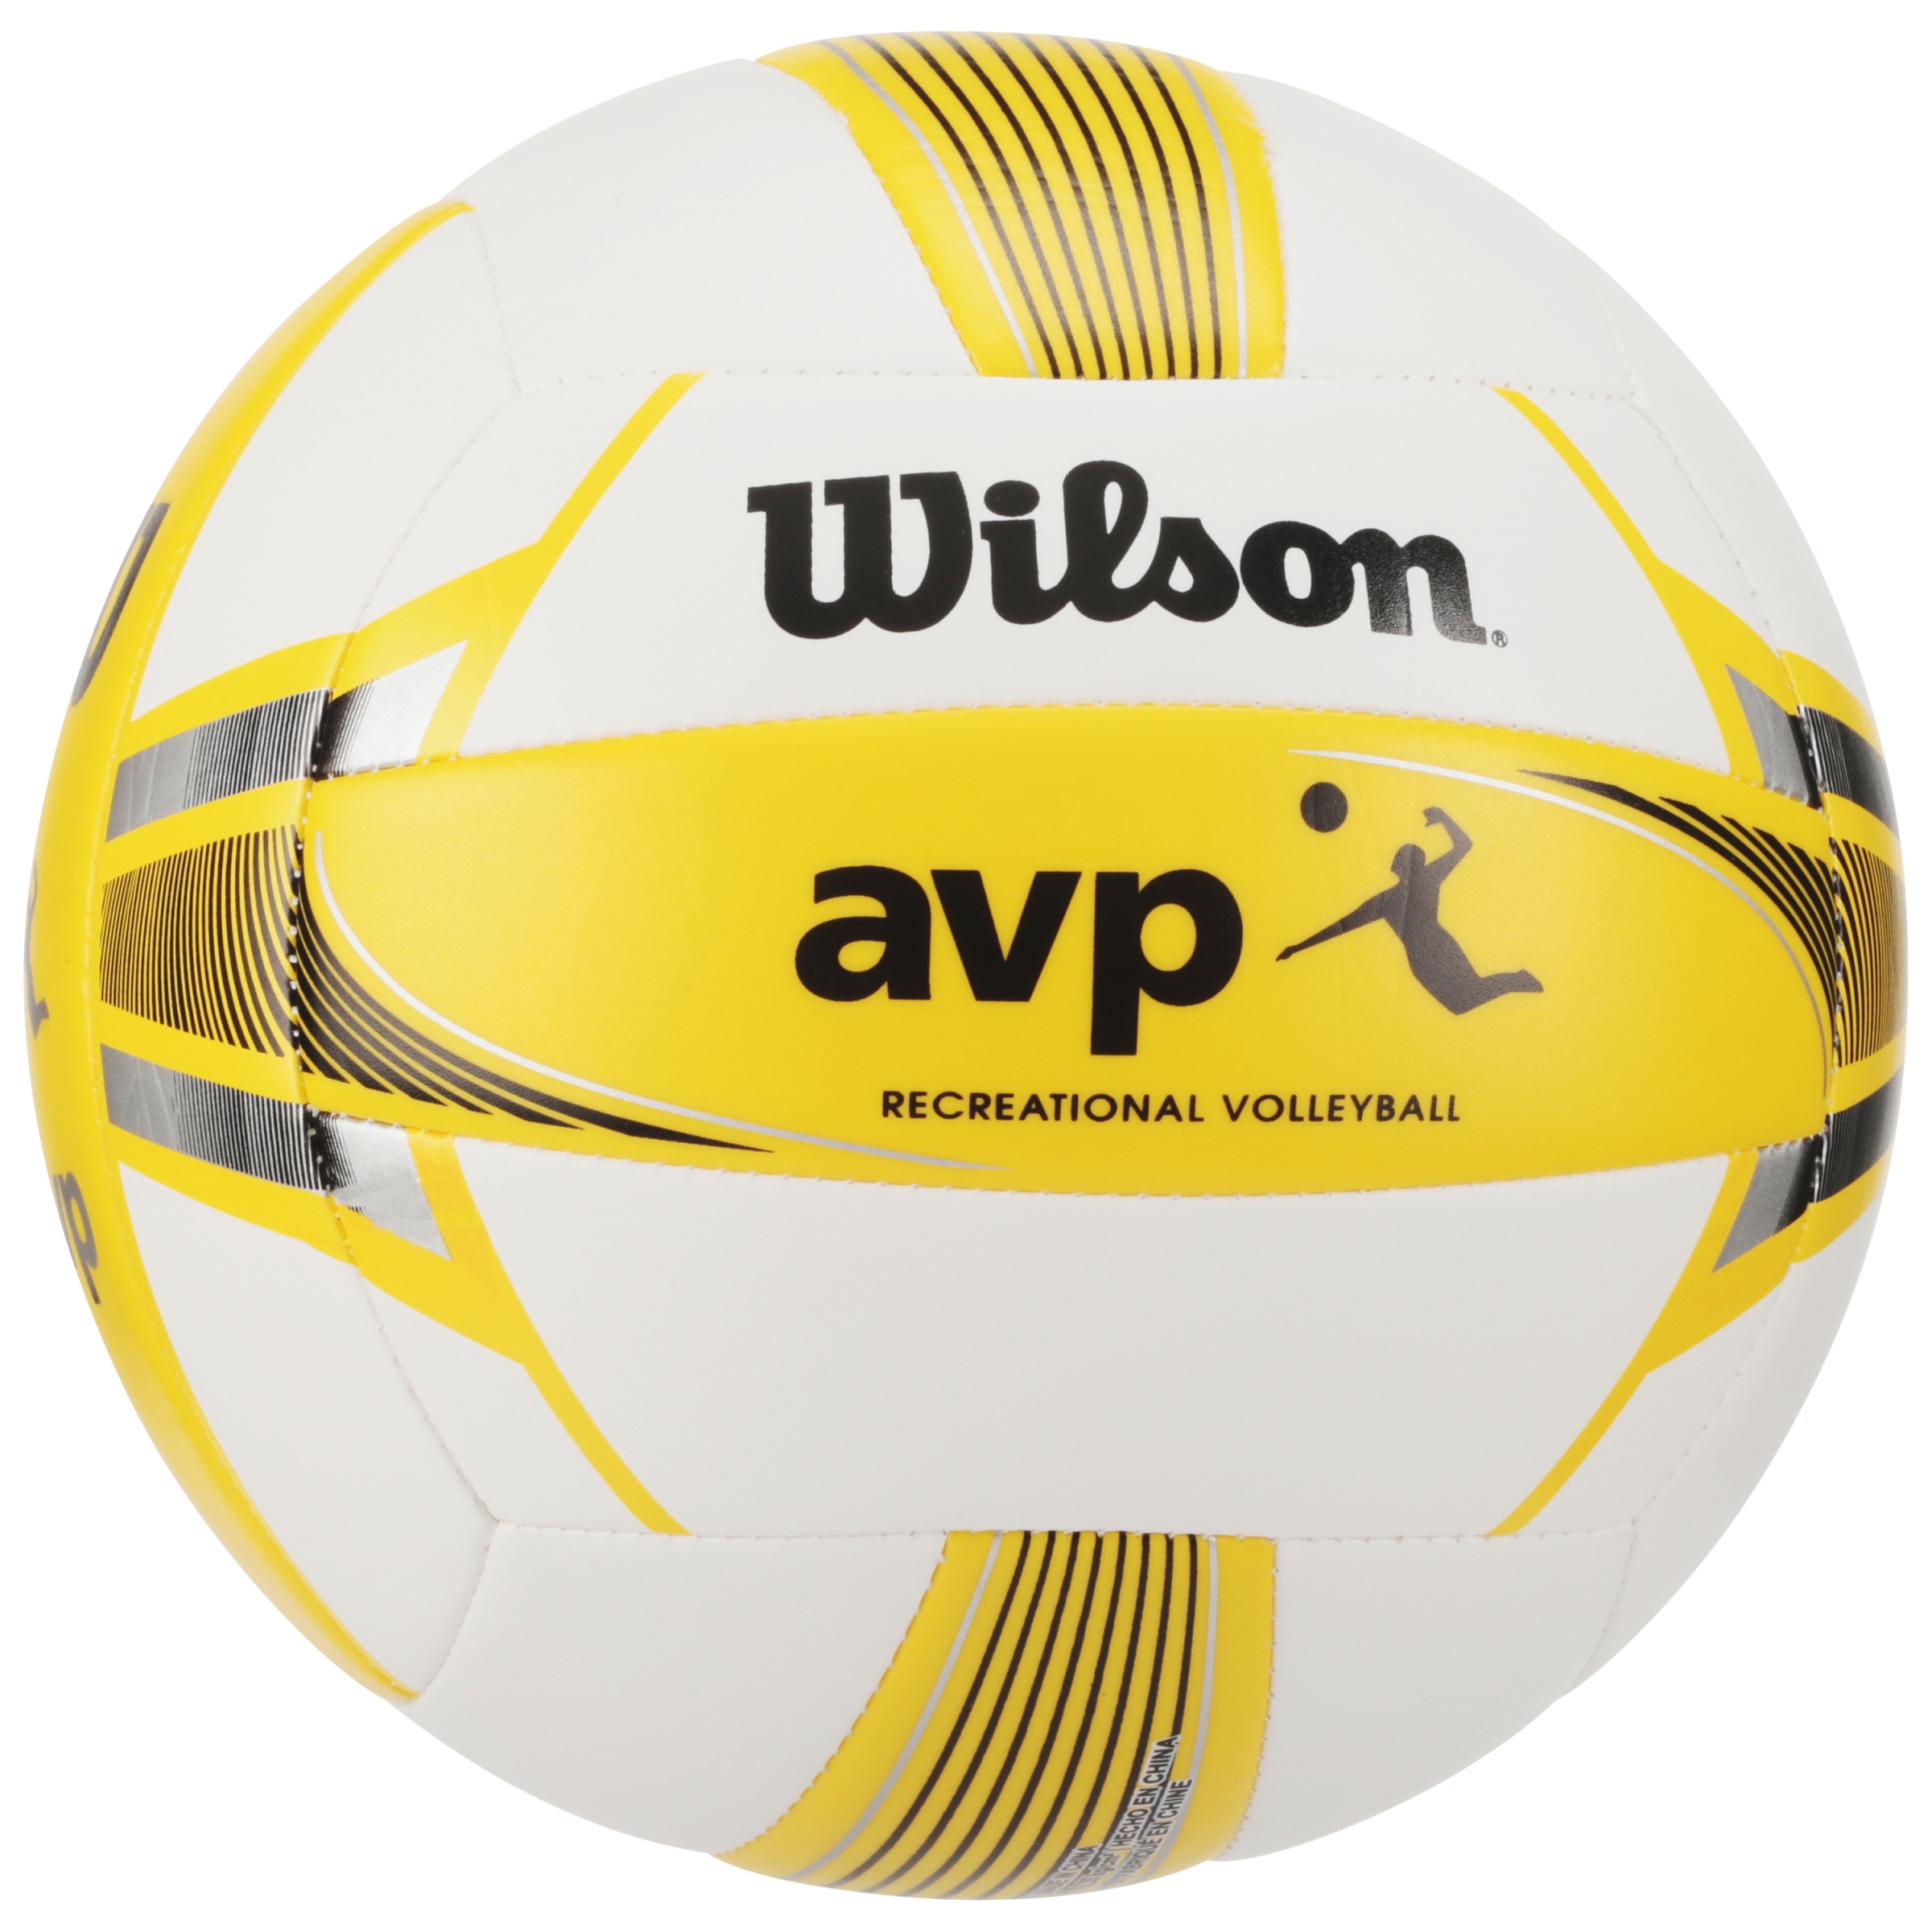 Wilson® More Win™ Official AVP Recreational Volleyball